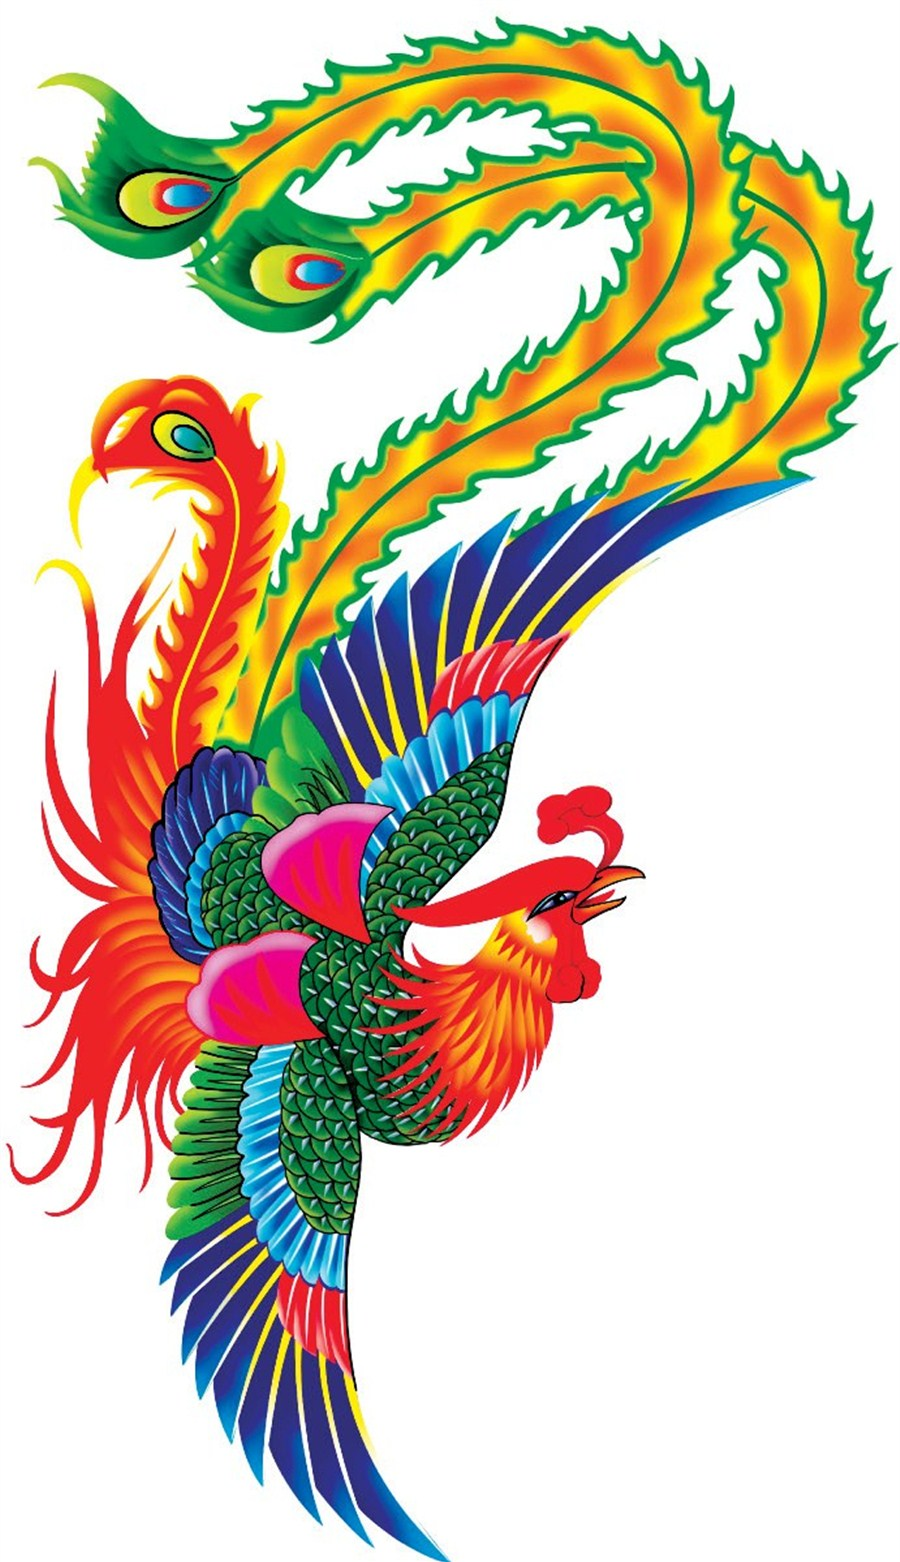 Phoenix clipart phoenix chinese. Leaves mark on culture